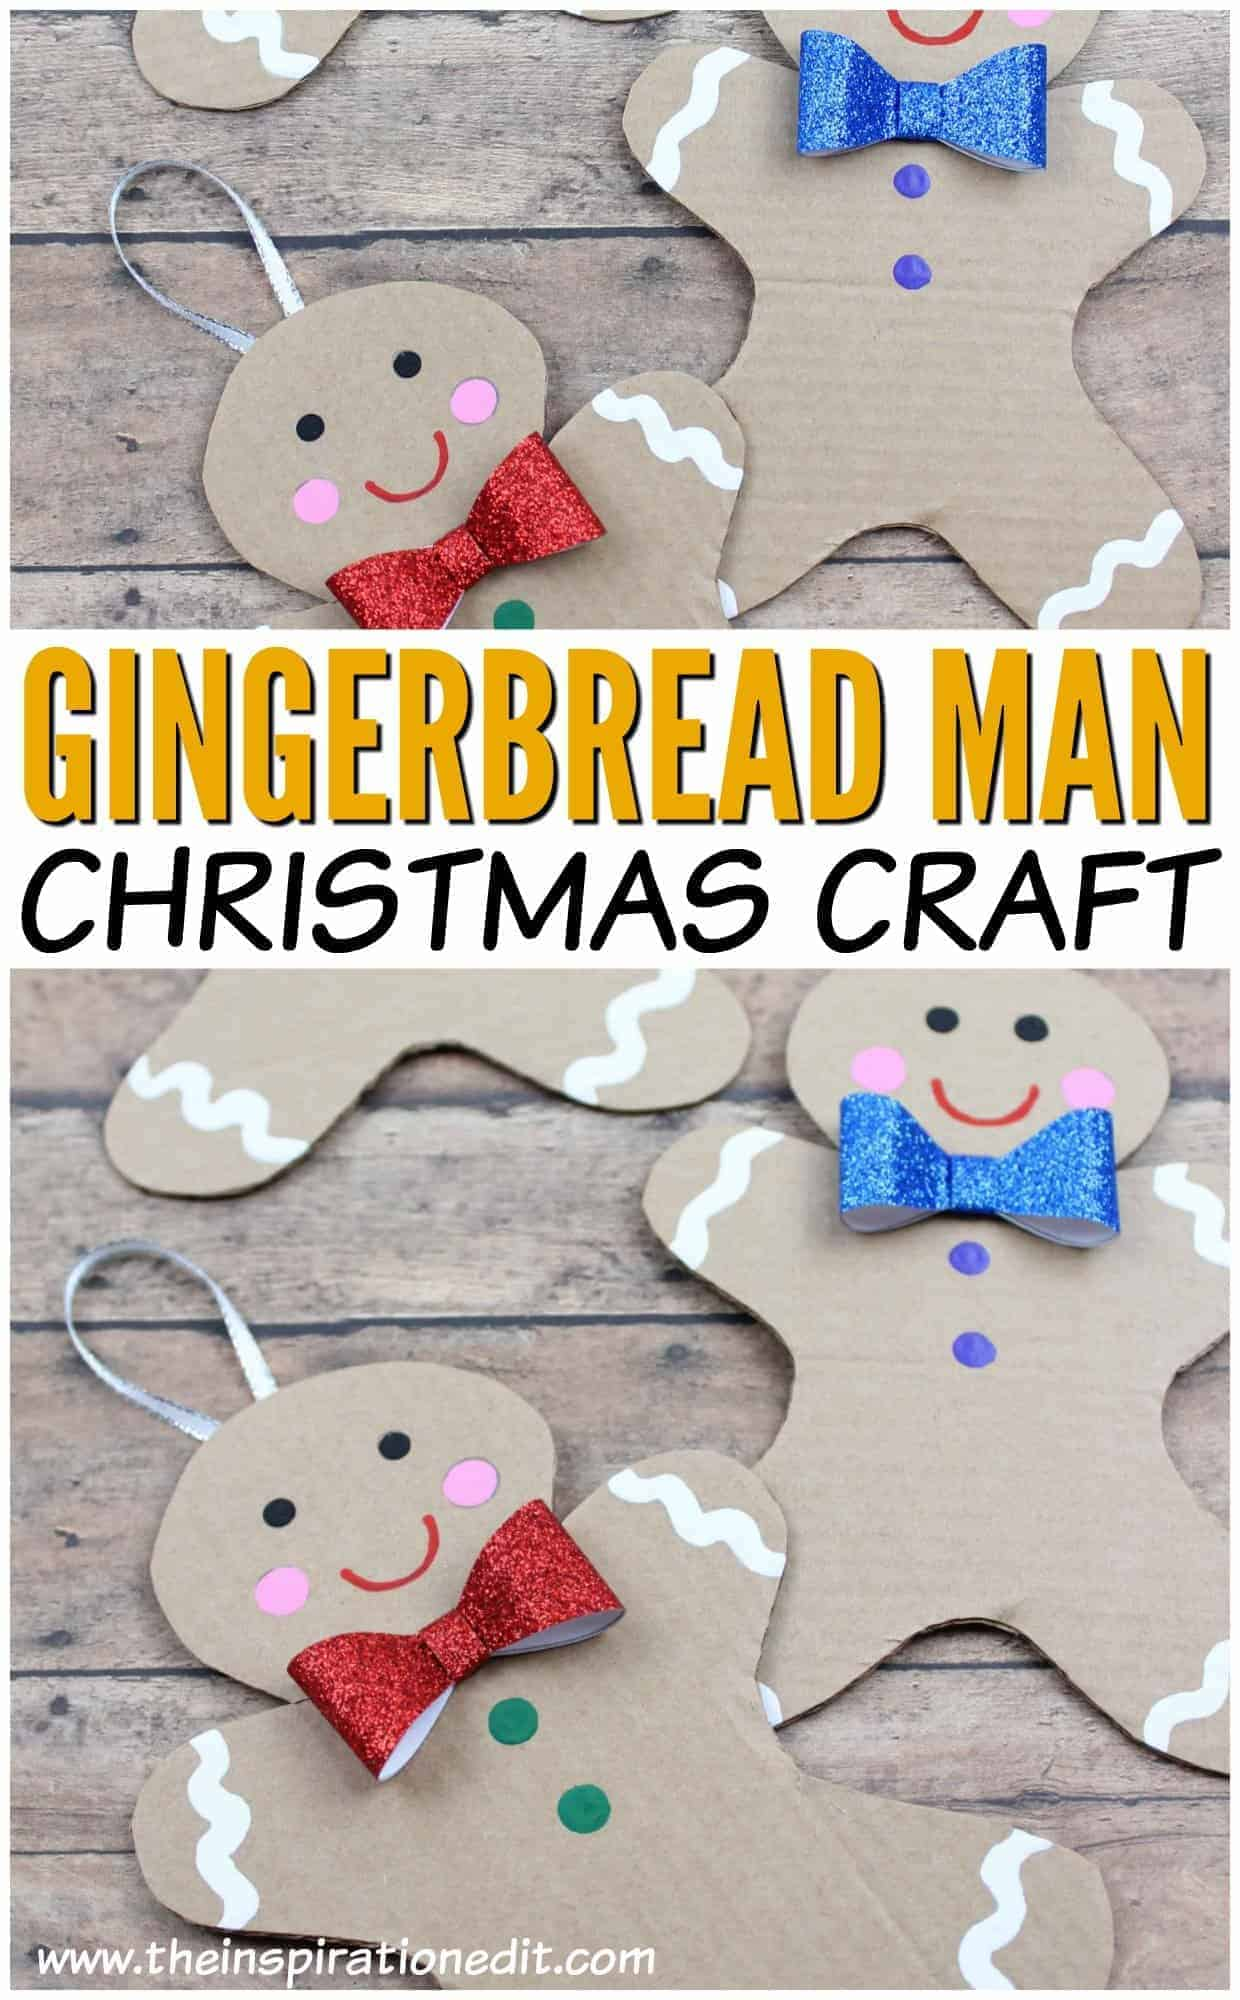 Gingerbread man craft to pin to your Pinterest